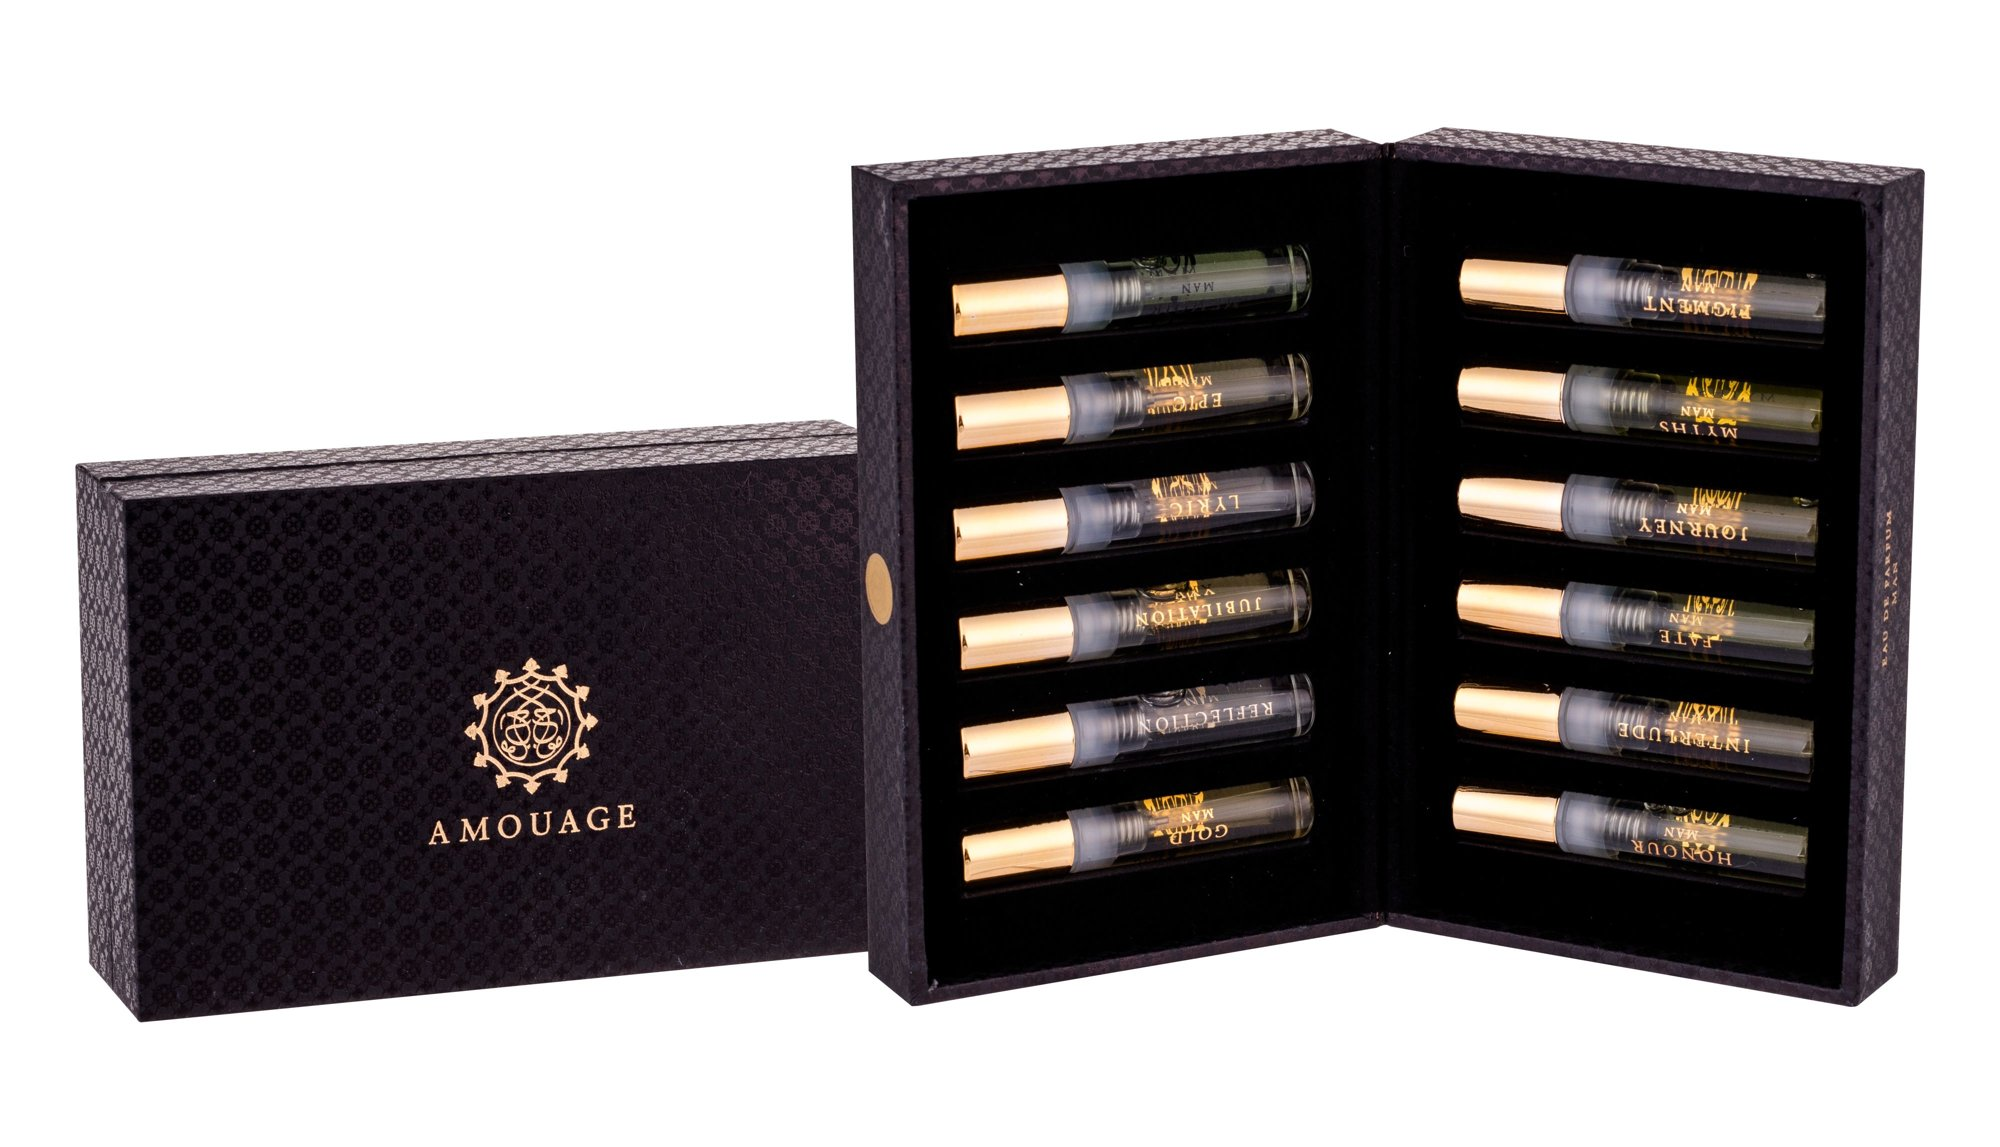 Amouage Vials Box for Men Eau de Parfum 12x2ml